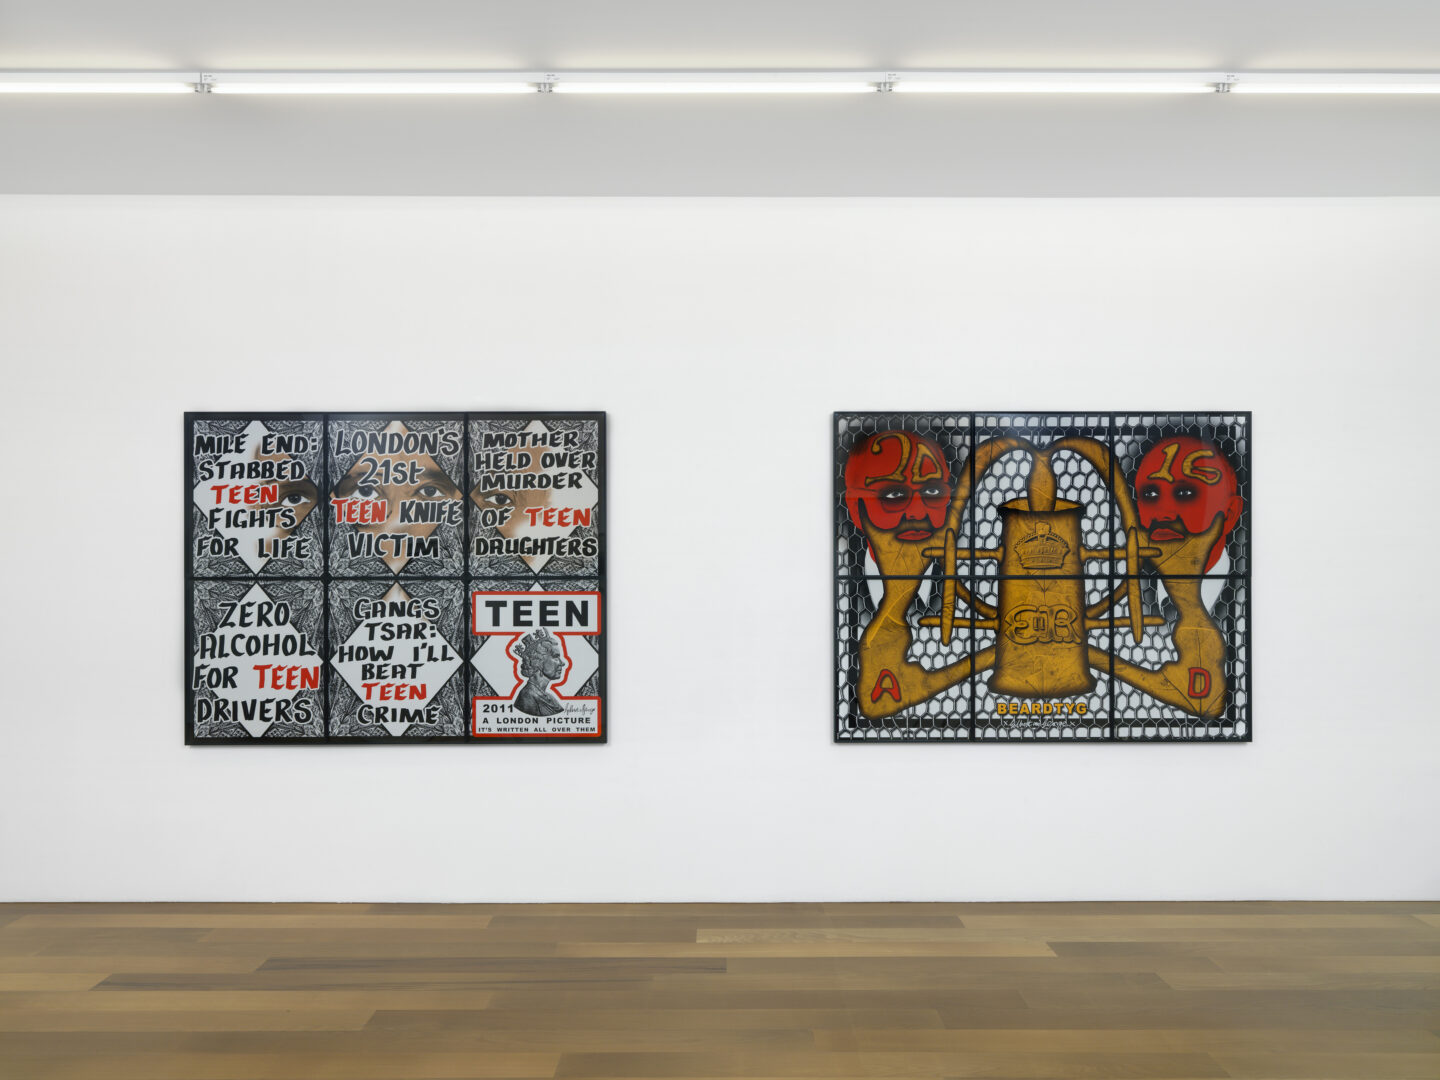 Exhibition View Groupshow by Albert Baronian «Le Choix d'Albert; view on Gilbert & George, TEEN, 2011 and Beardtyg, 2016» at Xippas, Geneva / Photo: Annik Wetter